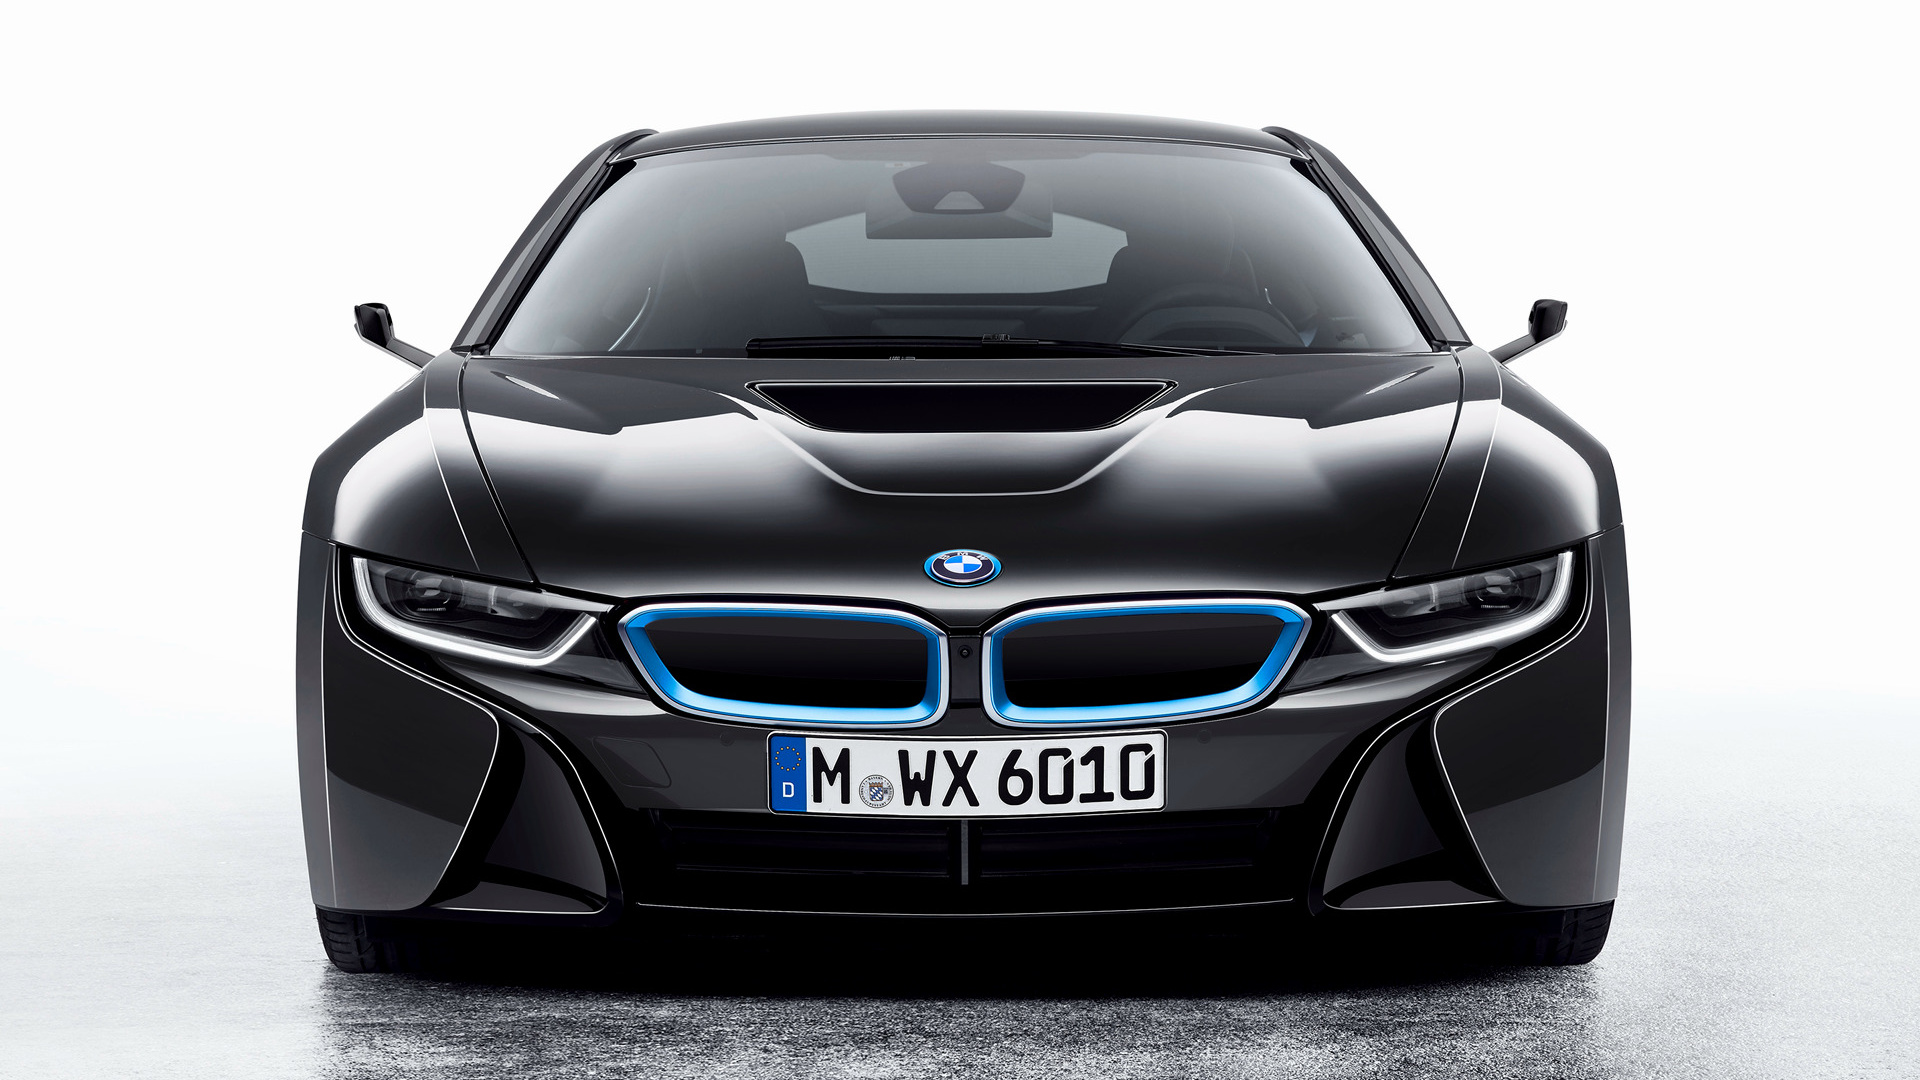 BMW i8 Mirrorless Concept (2016) Wallpapers and HD Images ...